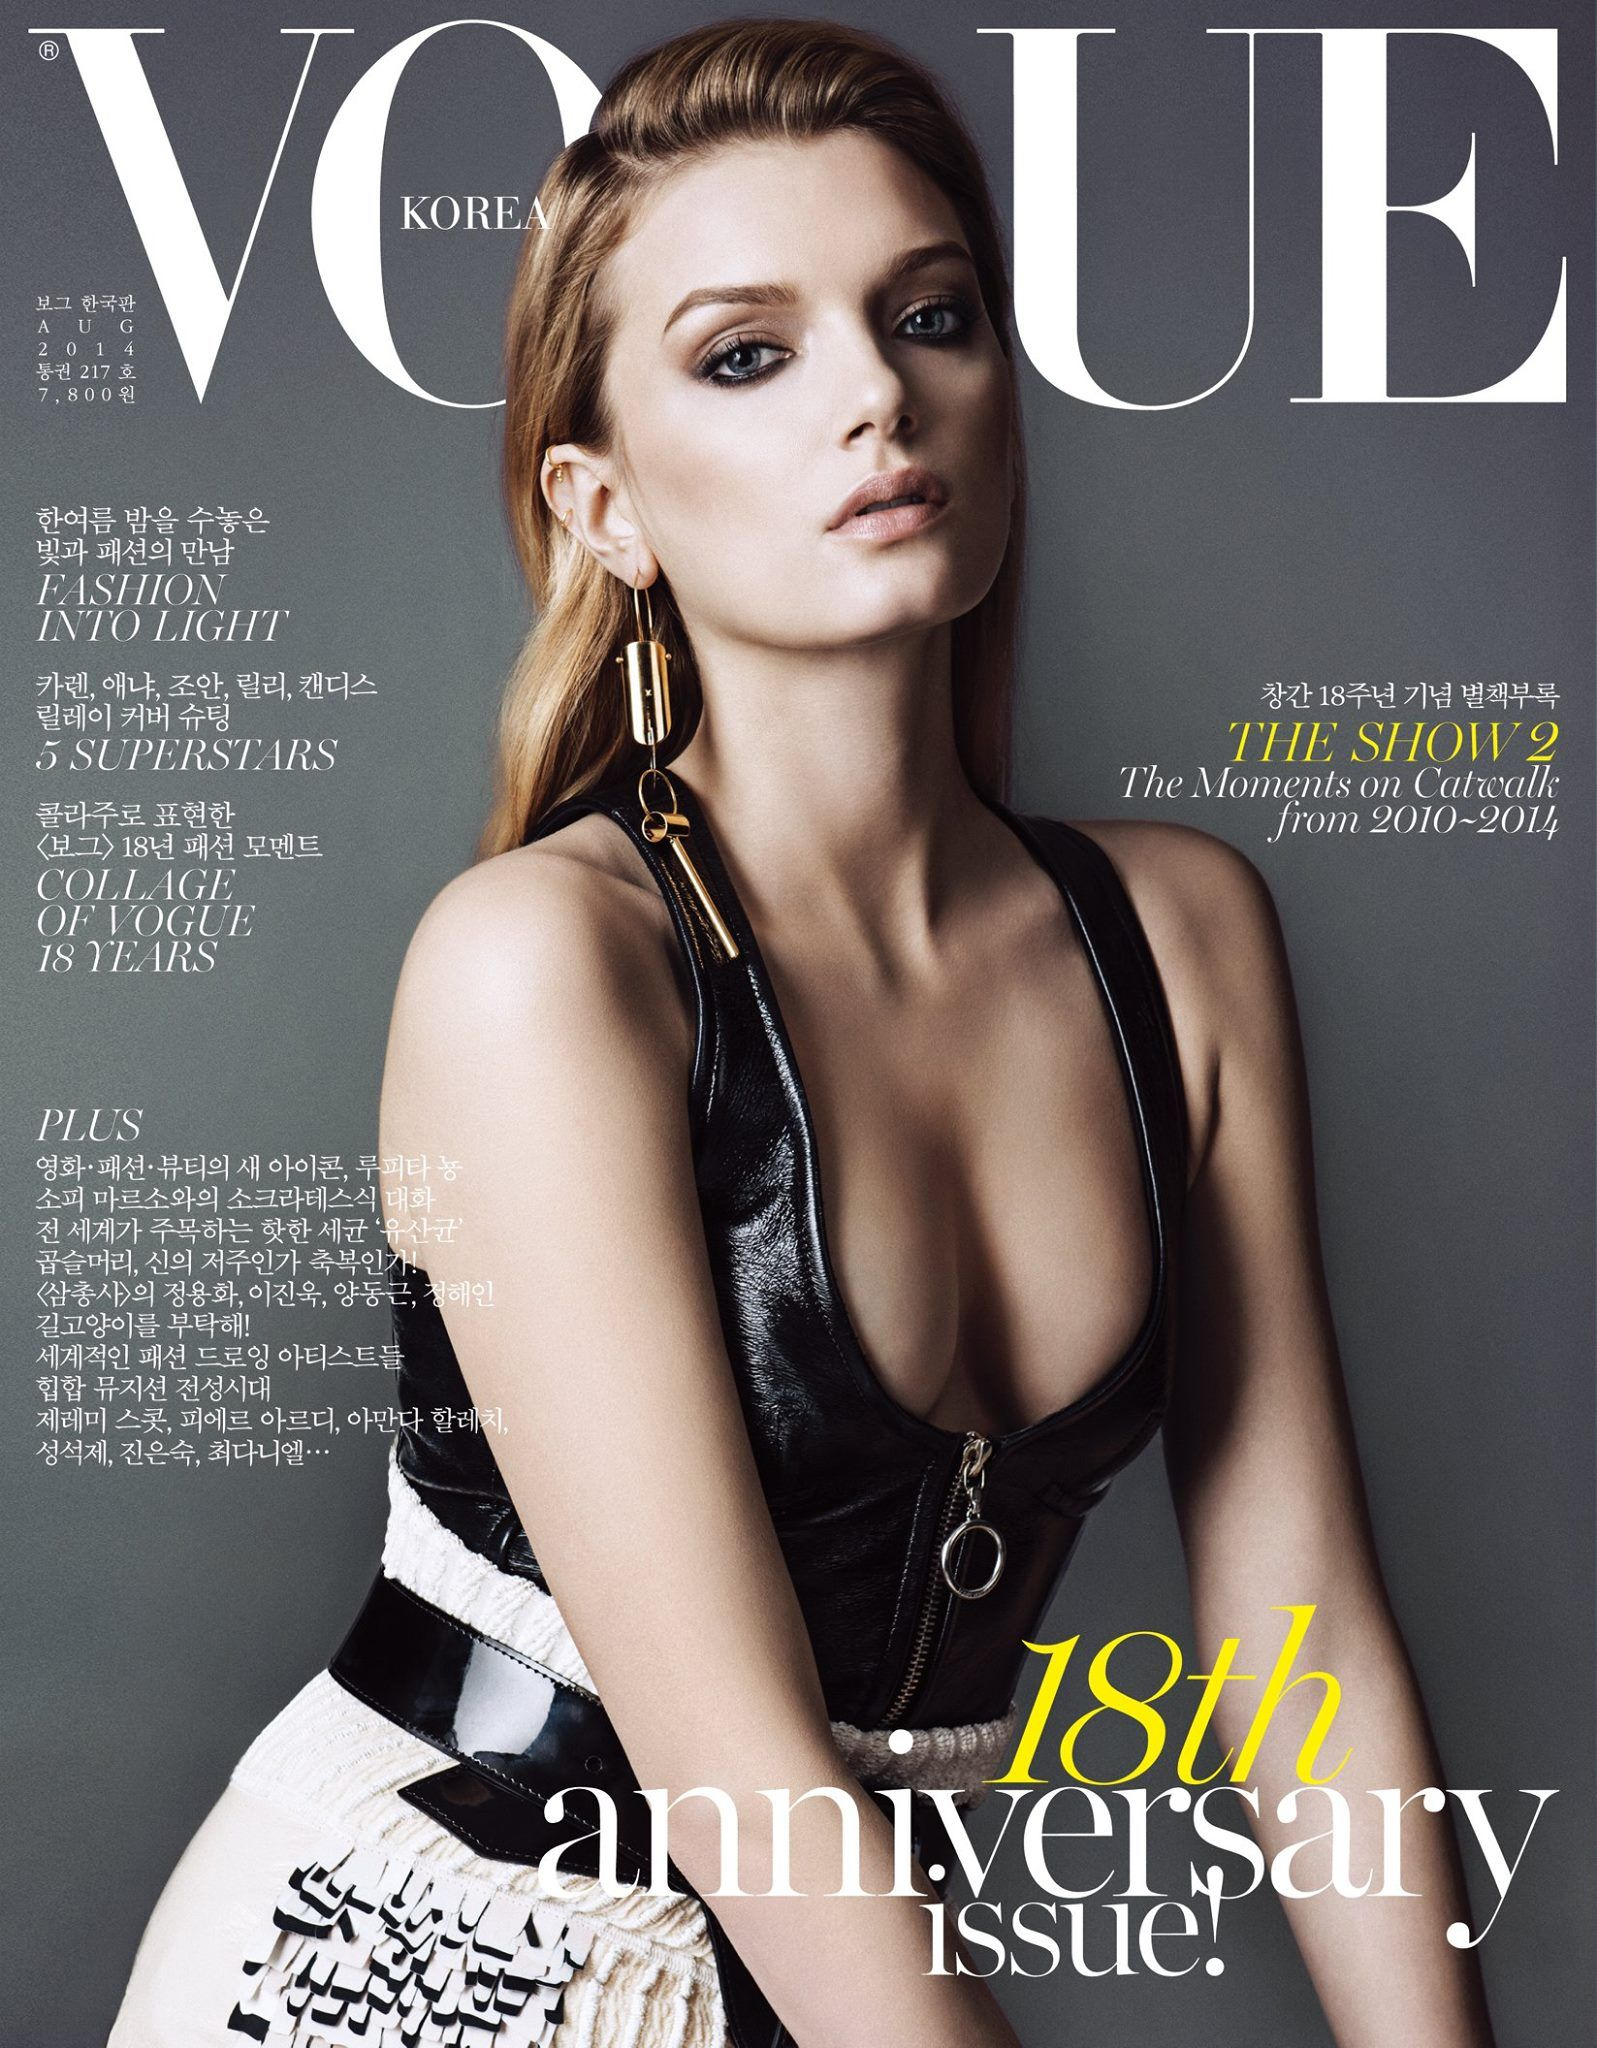 Donaldson lily vogue korea august fotos